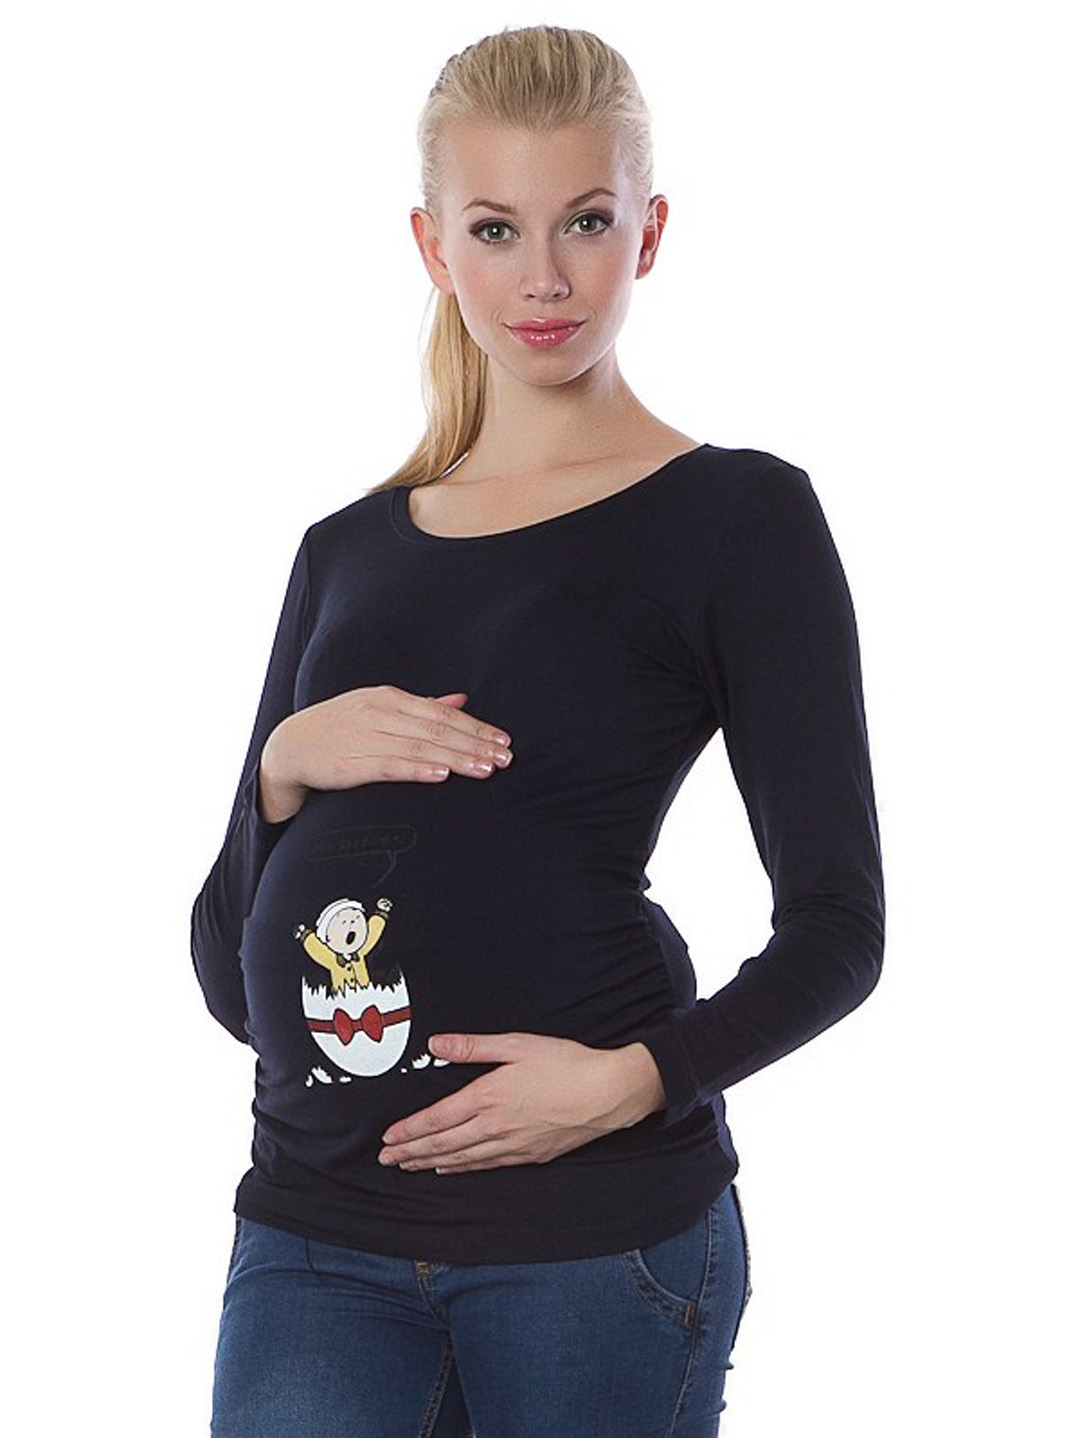 Maternity wear from brands like Motherhood and A Pea in the Pod solve those problems. They are designed to accommodate your adorable baby bump while keeping you comfortable and looking your best. They are designed to accommodate your adorable baby bump while keeping you comfortable and looking your best.